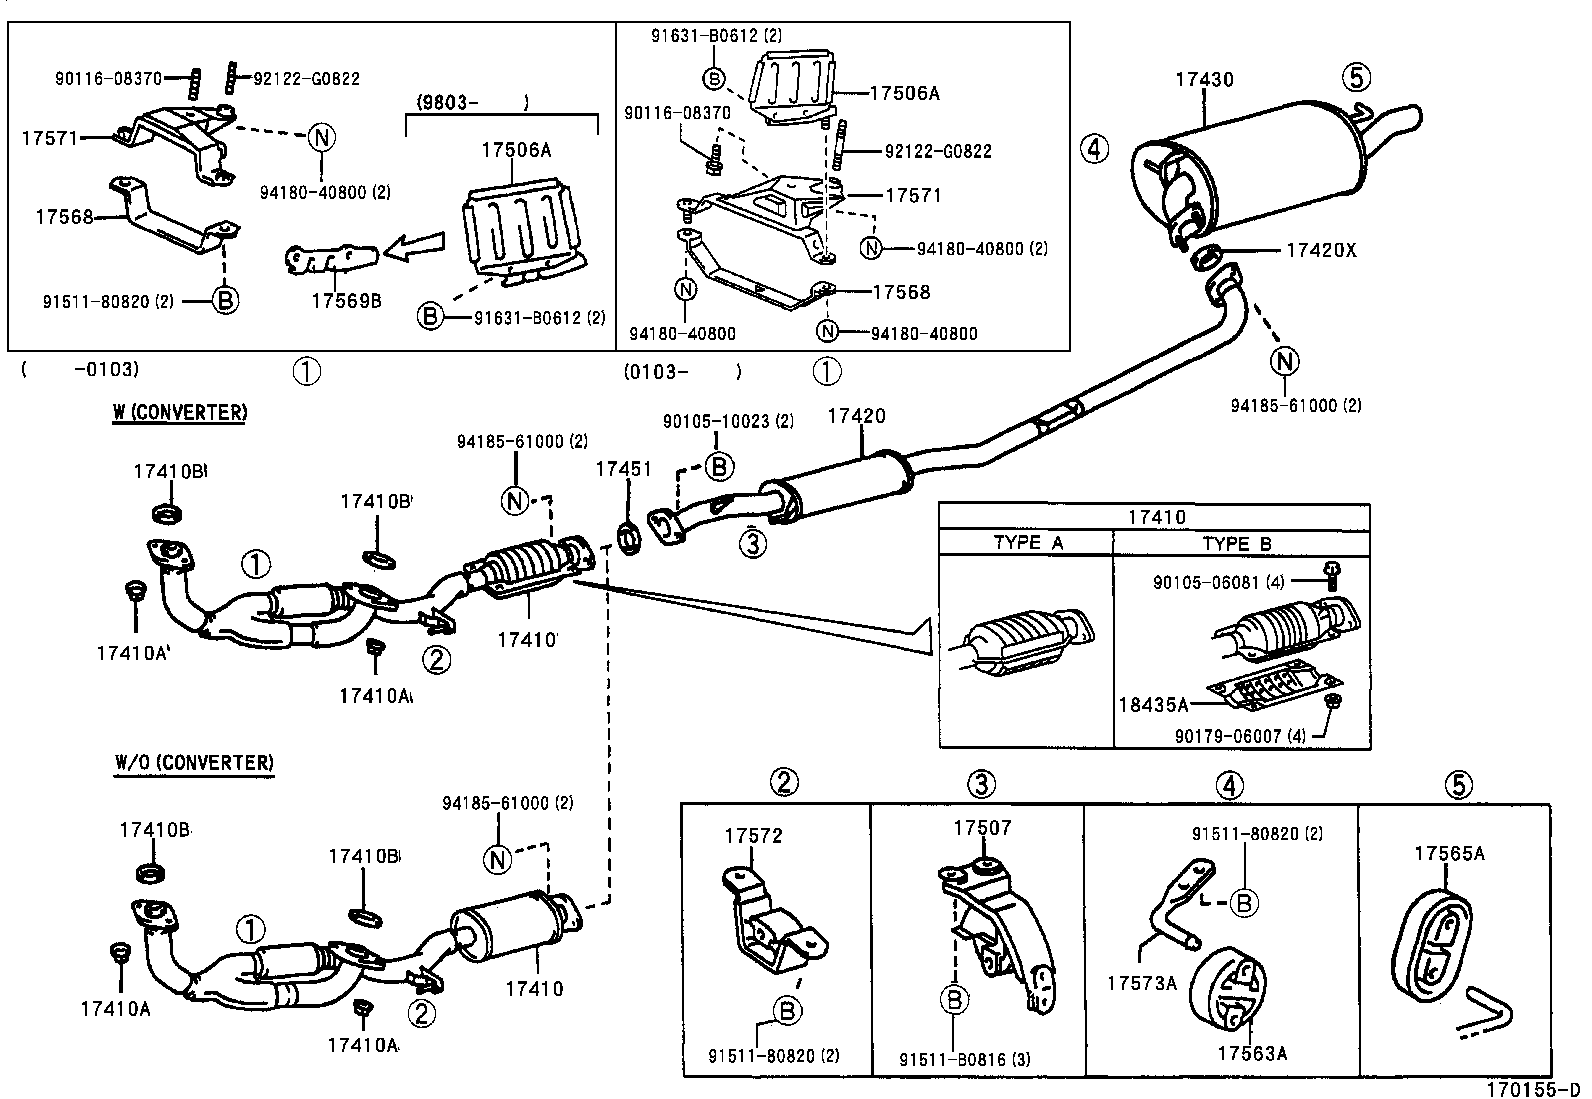 Wiring Diagram 2004 Echo Simple Guide About 2010 Toyota Prius Camrymcv20l Aepgkw Tool Engine Fuel Exhaust